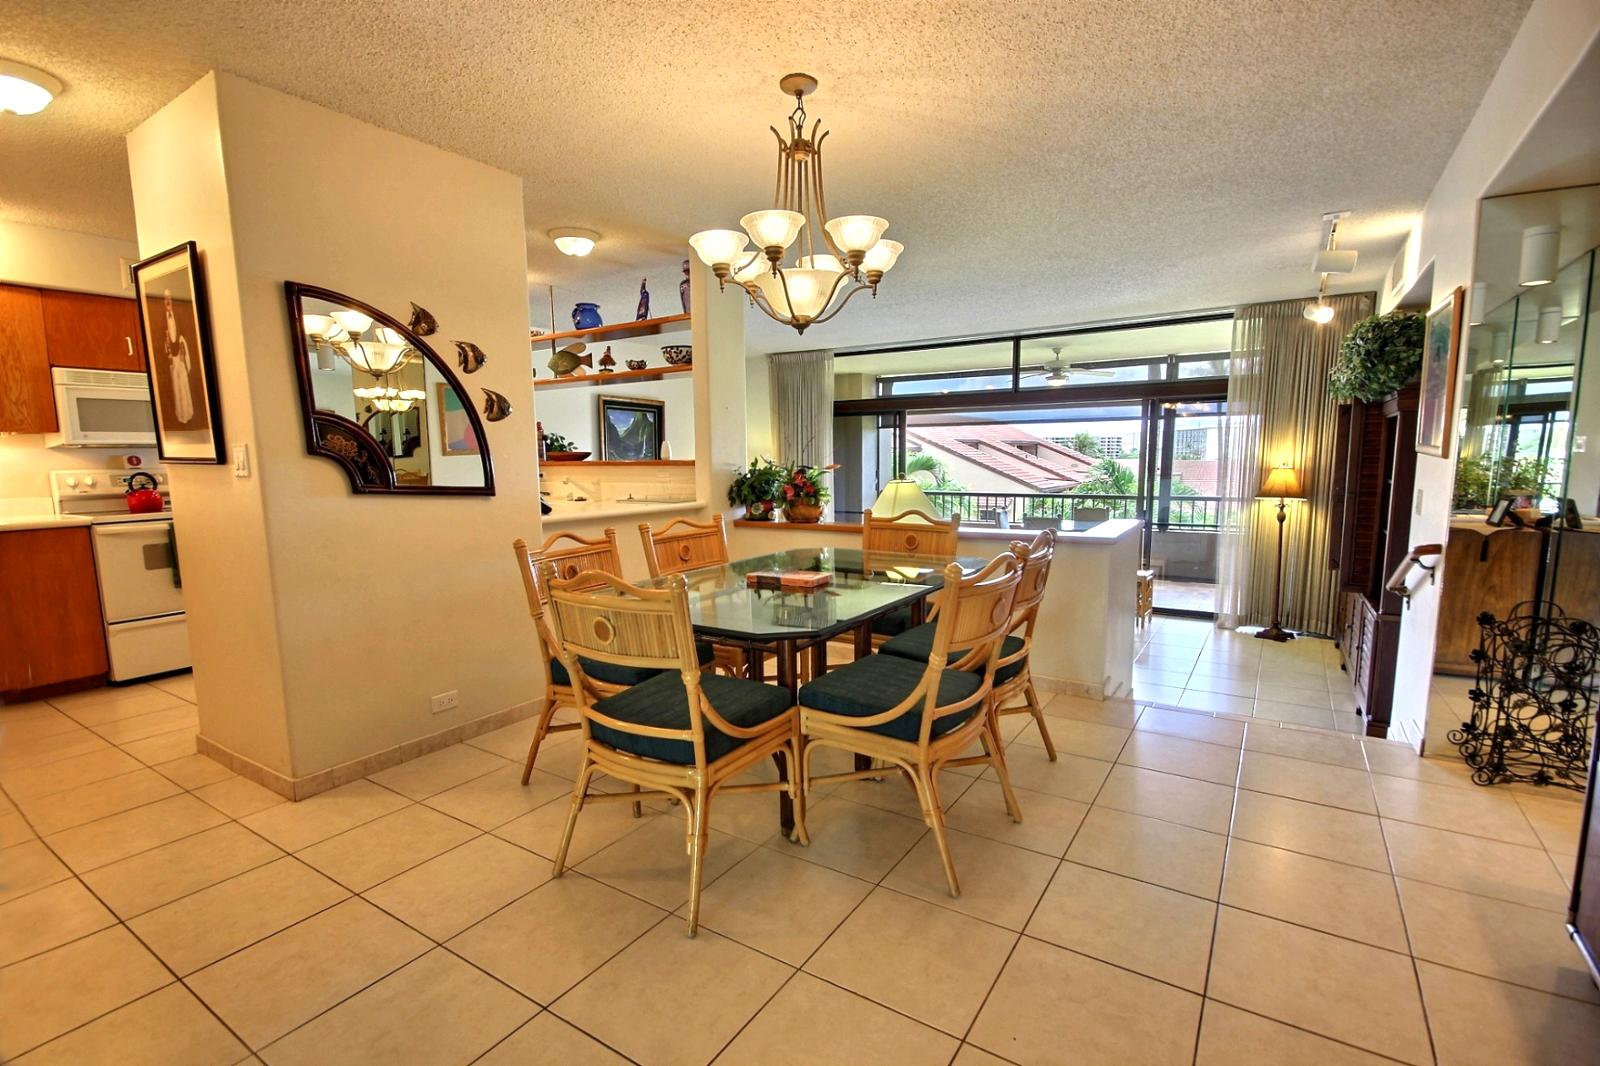 Large dining room table off the kitchen with seating for six